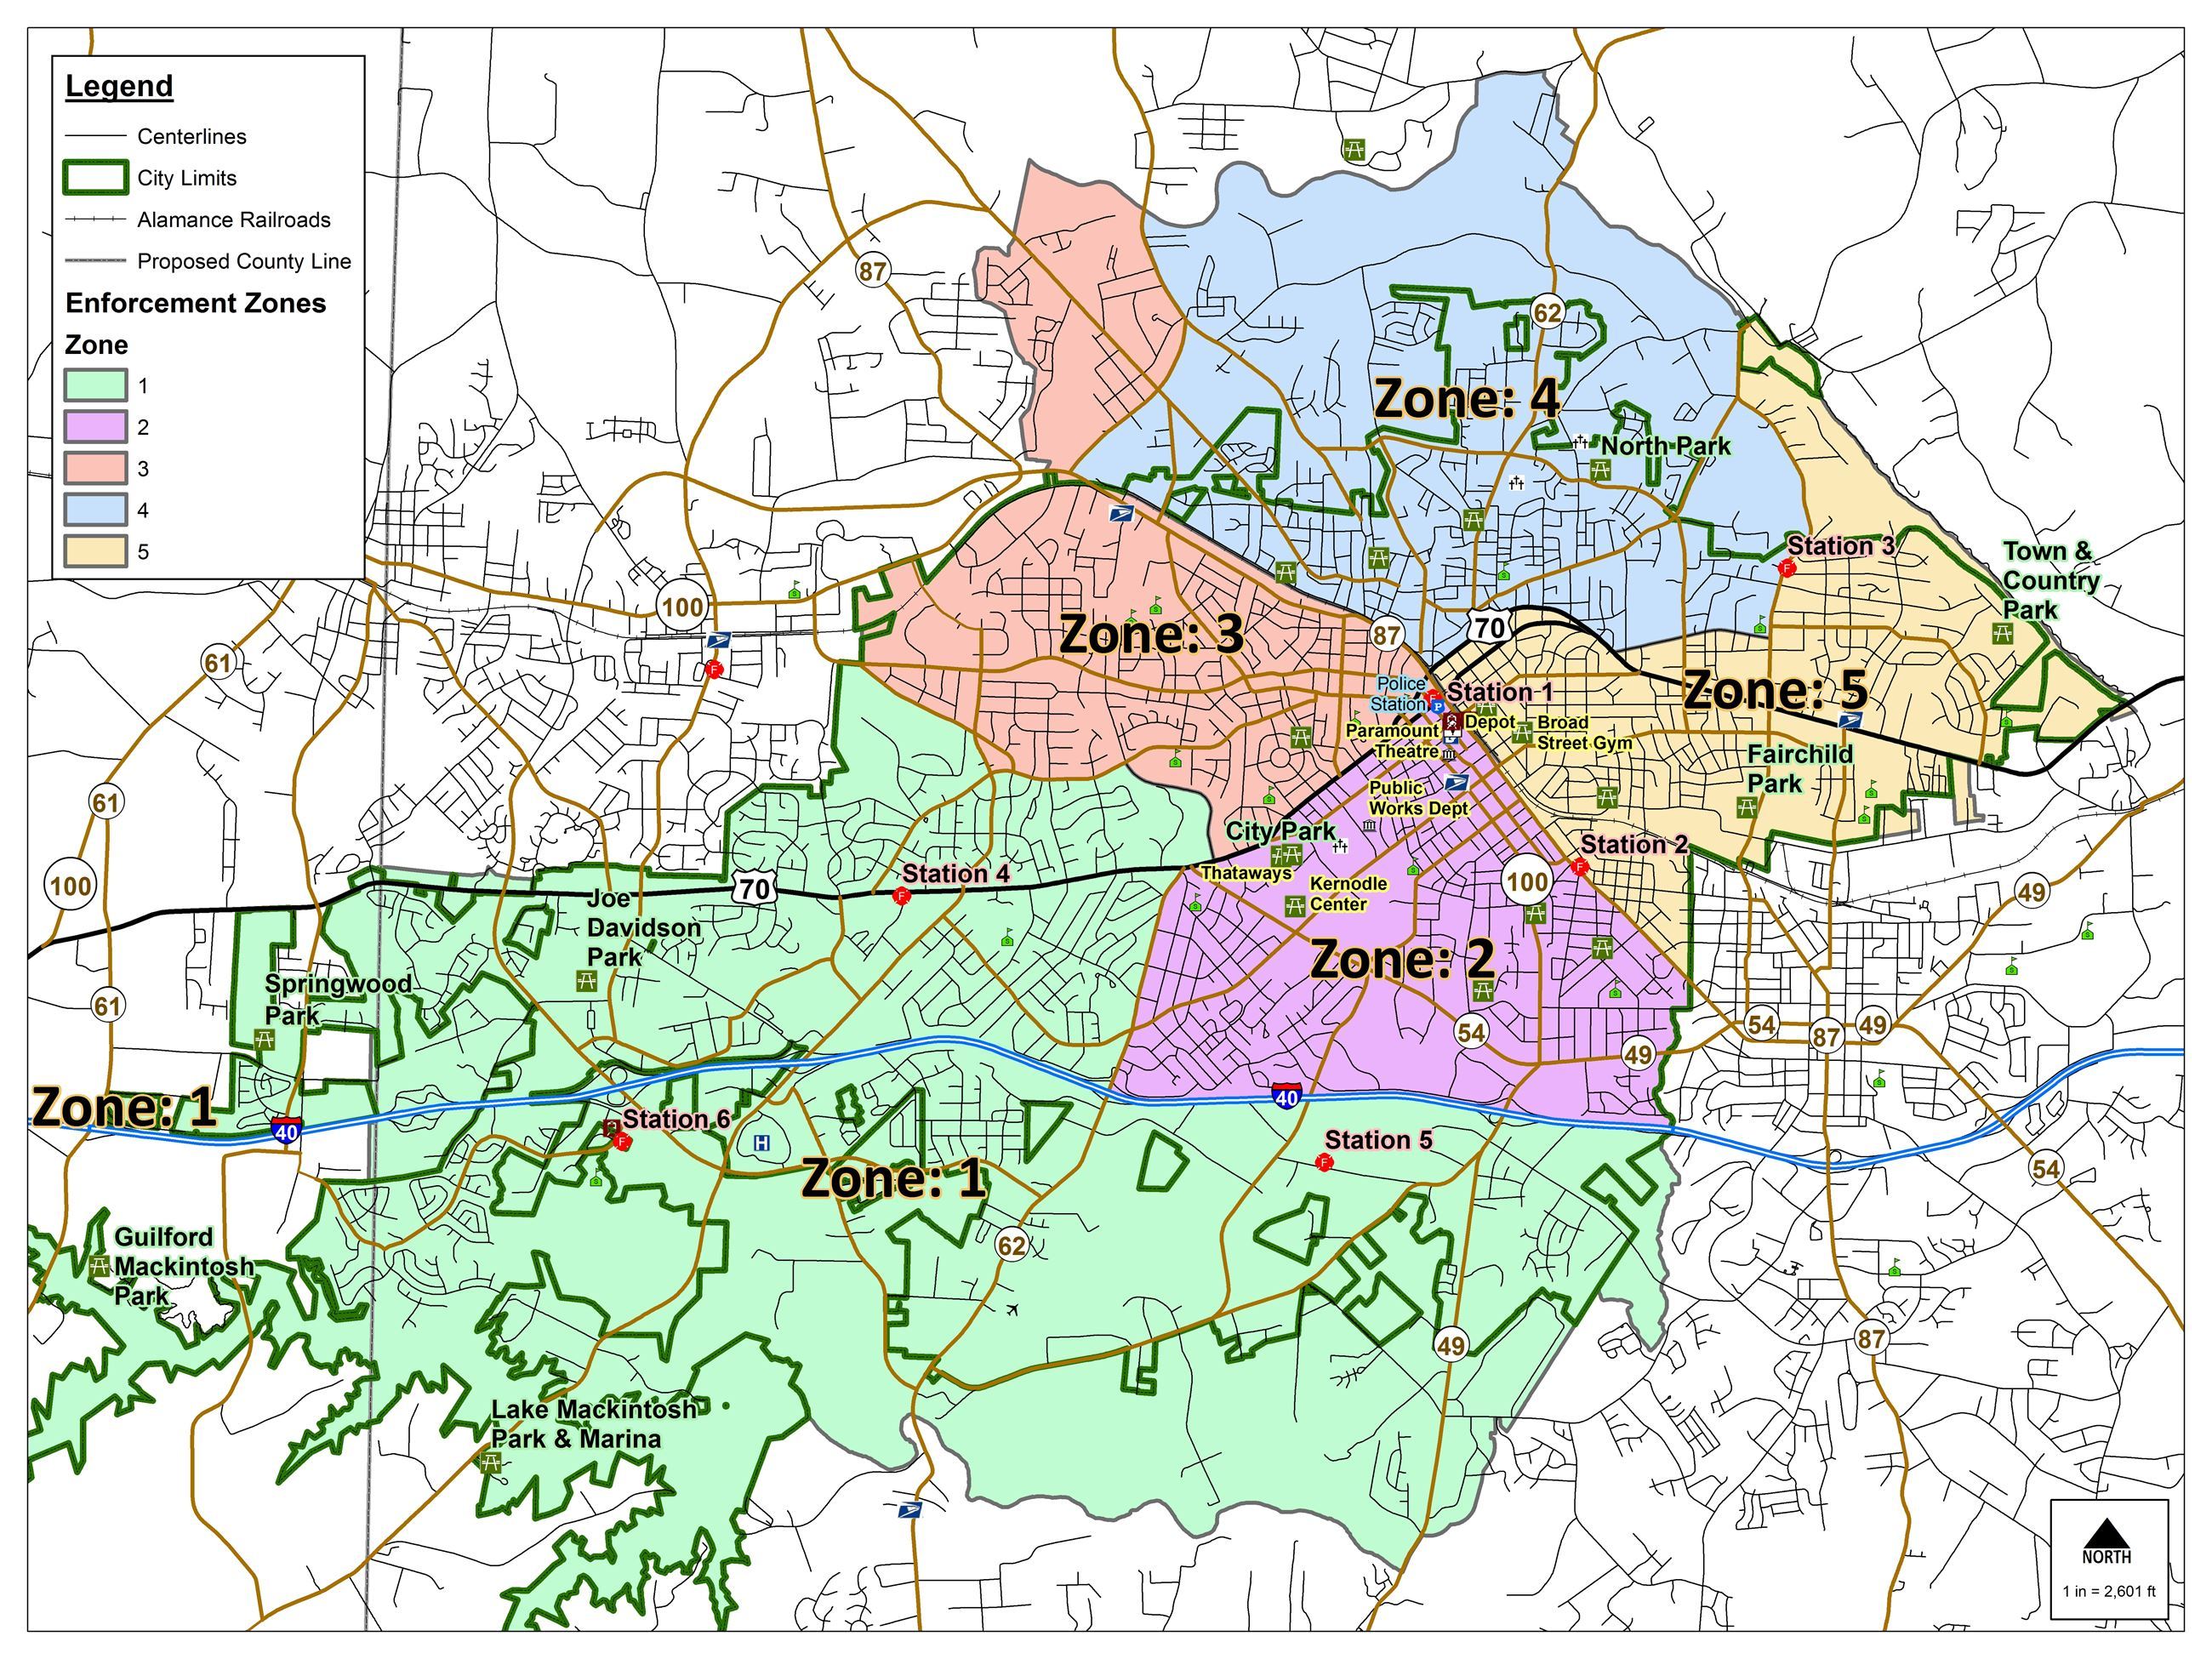 Enforcement Zones Map